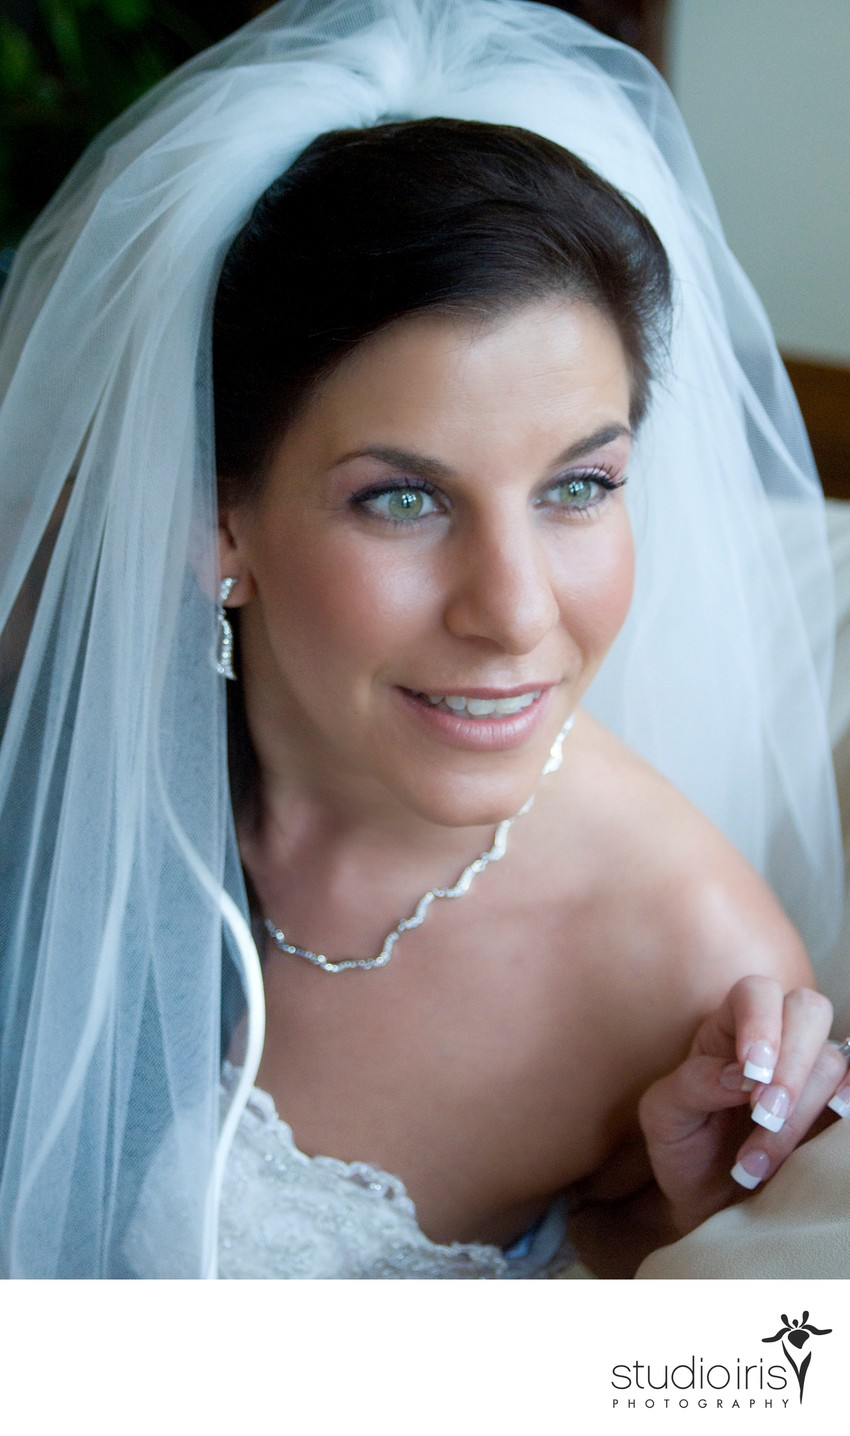 Bridal portrait by window